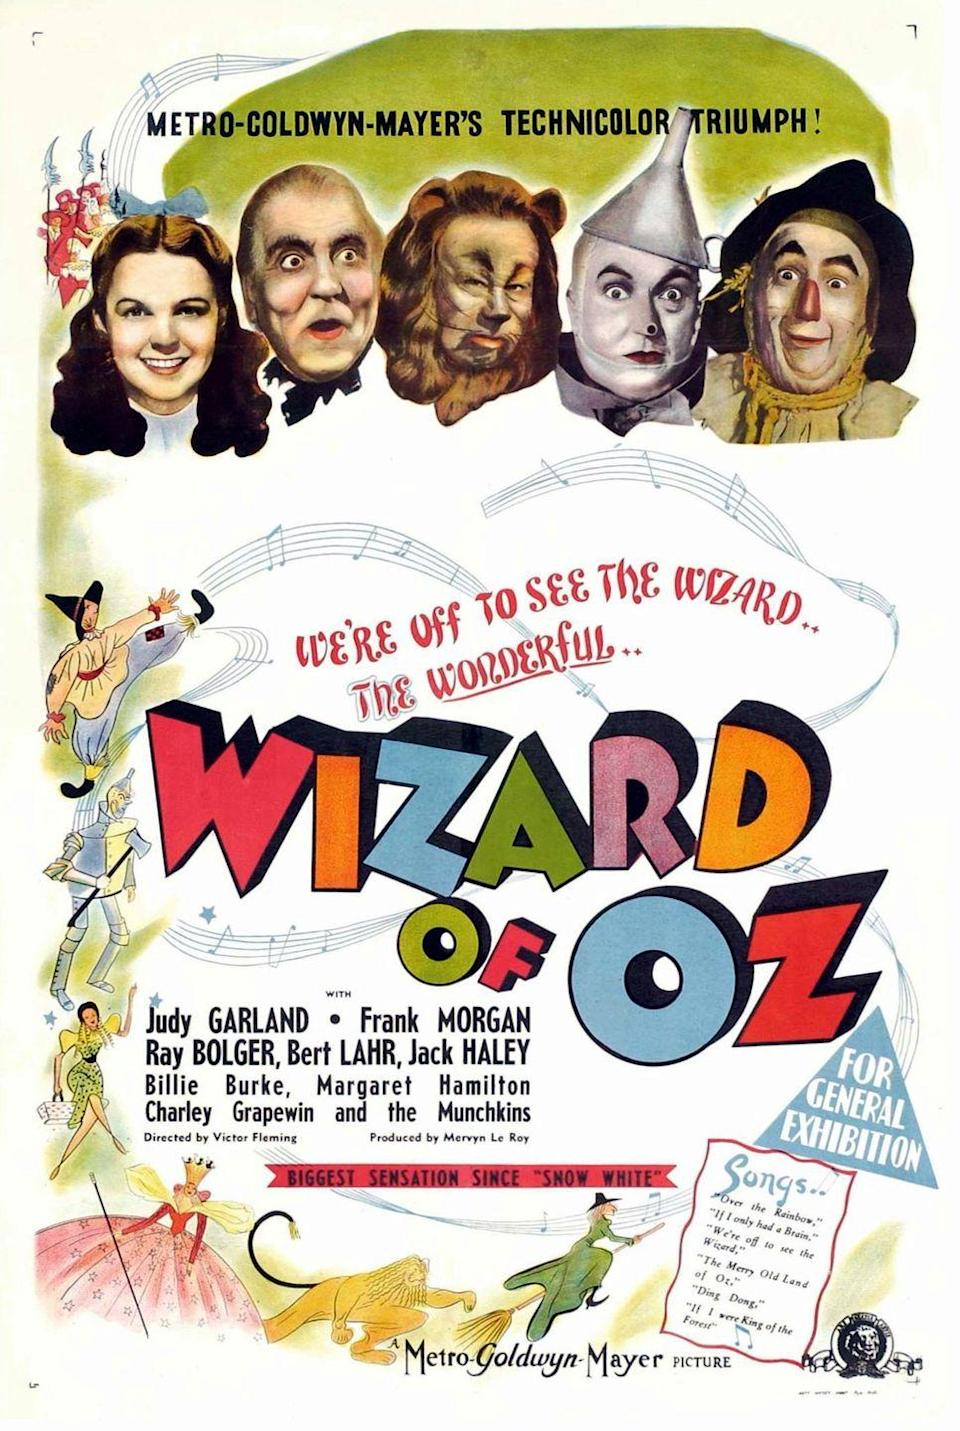 """<p>Let's start with the quintessential witch movie — and a film that's an absolute must-watch at any age. In <em>The Wizard of Oz</em>, little Dorothy from Kansas gets swept up in a tornado with her dog Toto and lands in Oz. The Good Witch and the Wicked Witch are central characters in her journey home.</p><p><a class=""""link rapid-noclick-resp"""" href=""""https://www.amazon.com/Wizard-Oz-Judy-Garland/dp/B002QRBB30?tag=syn-yahoo-20&ascsubtag=%5Bartid%7C10070.g.37360837%5Bsrc%7Cyahoo-us"""" rel=""""nofollow noopener"""" target=""""_blank"""" data-ylk=""""slk:WATCH NOW"""">WATCH NOW</a></p>"""